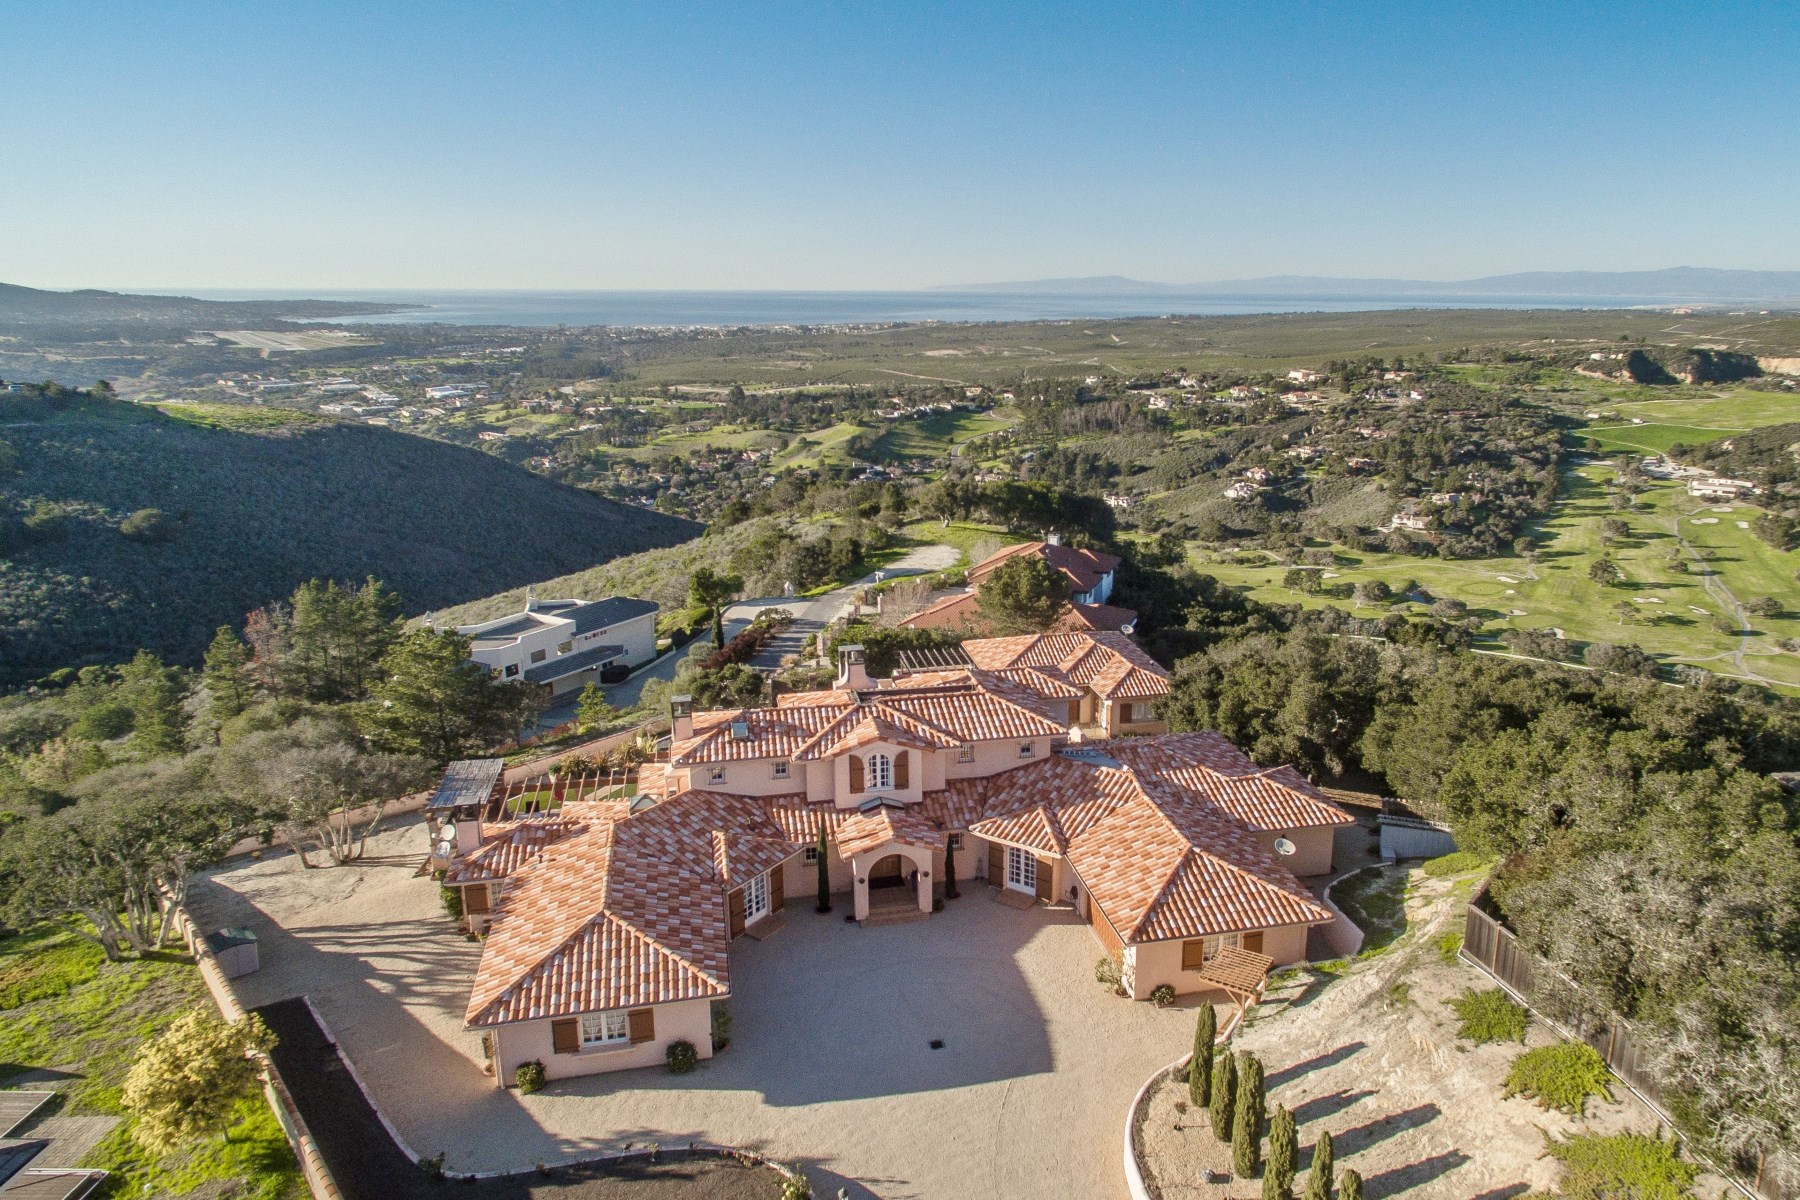 Single Family Home for Sale at Hilltop French Villa with Bay Views 25021 Hidden Mesa Court Monterey, California 93940 United States